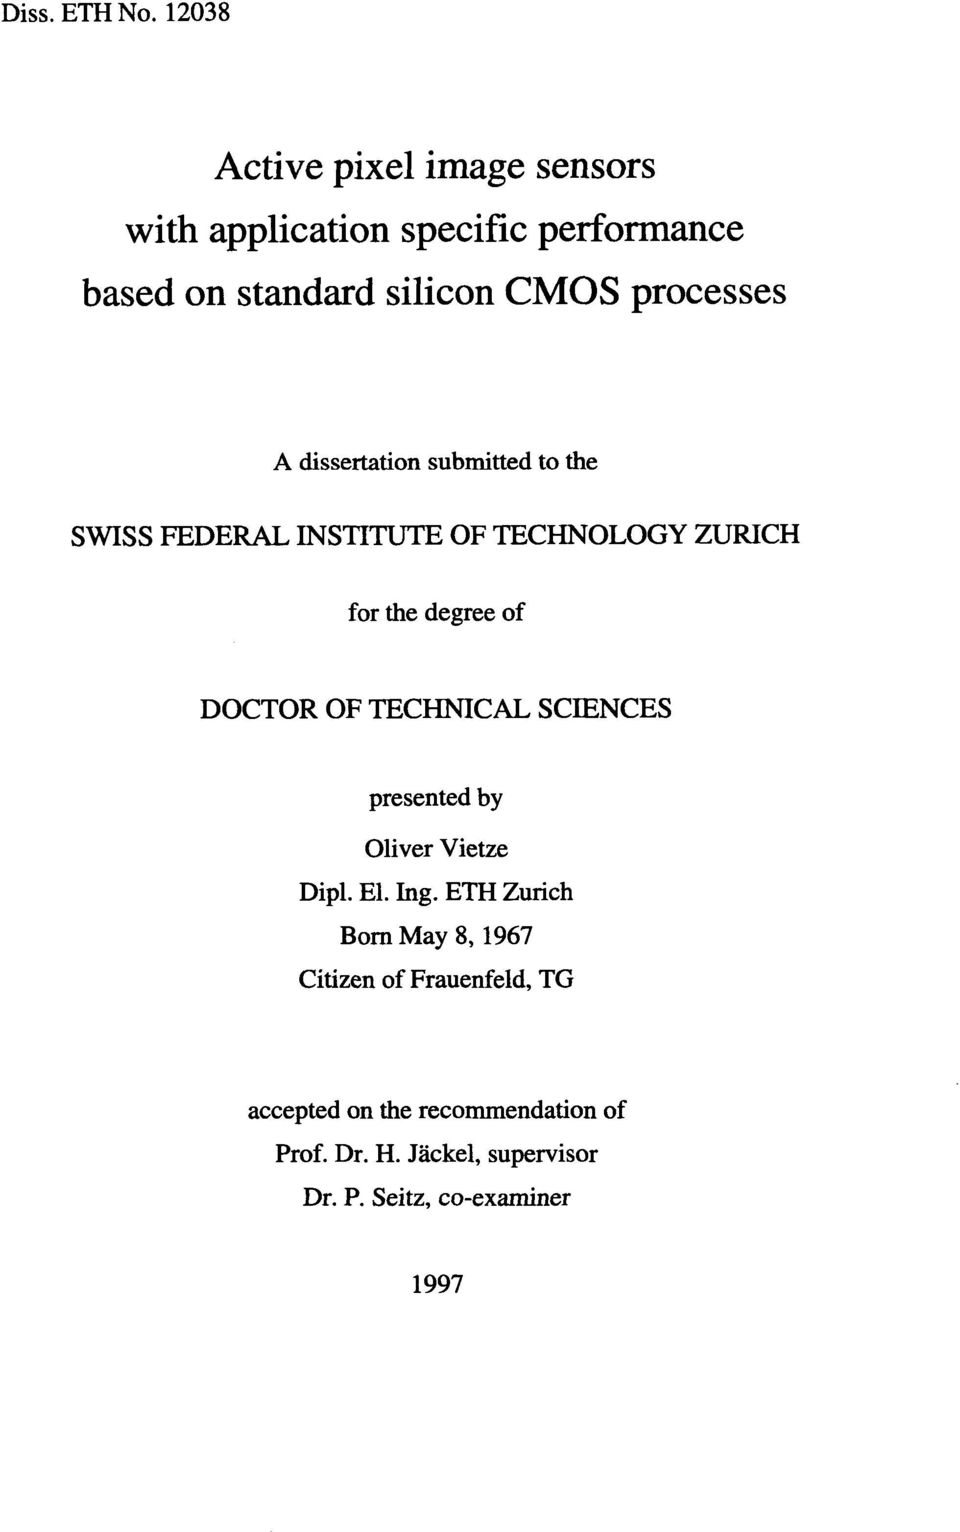 processes A dissertation submitted to the SWISS FEDERAL INSTITUTE OF TECHNOLOGY ZURICH for the degree of